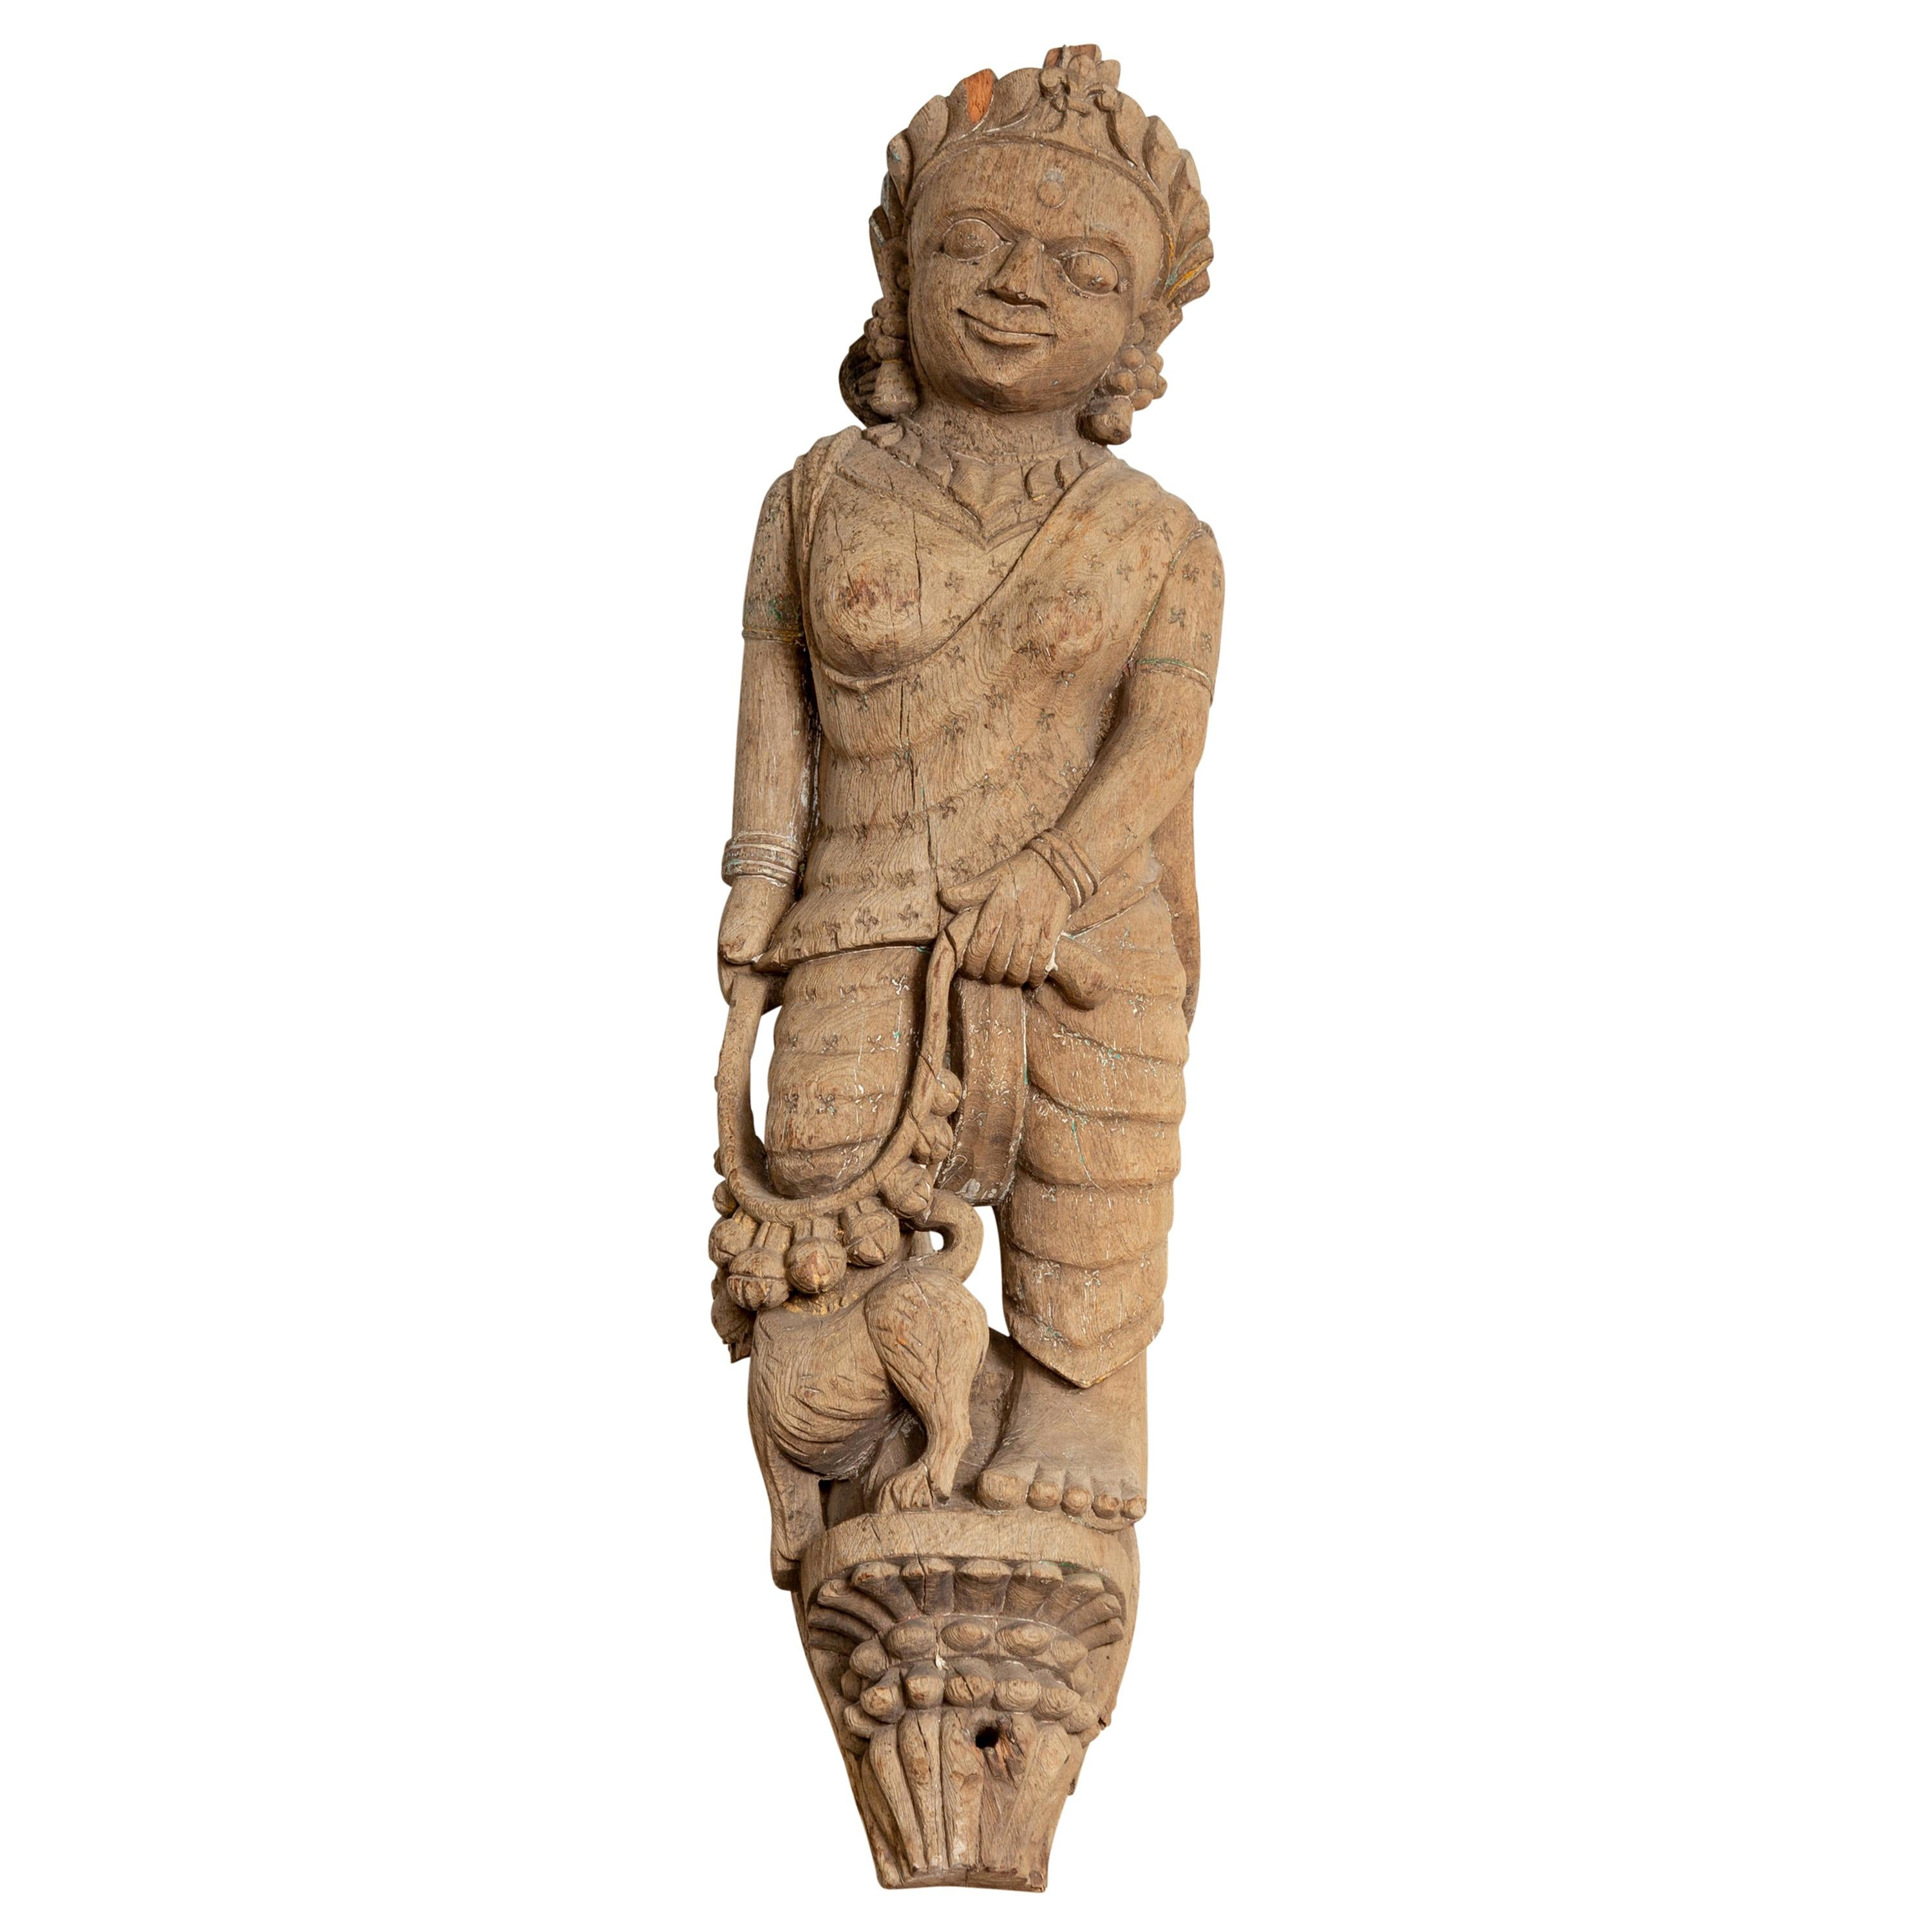 Indian Gujarat Hand Carved Temple Carving Statue Depicting a Woman and a Feline